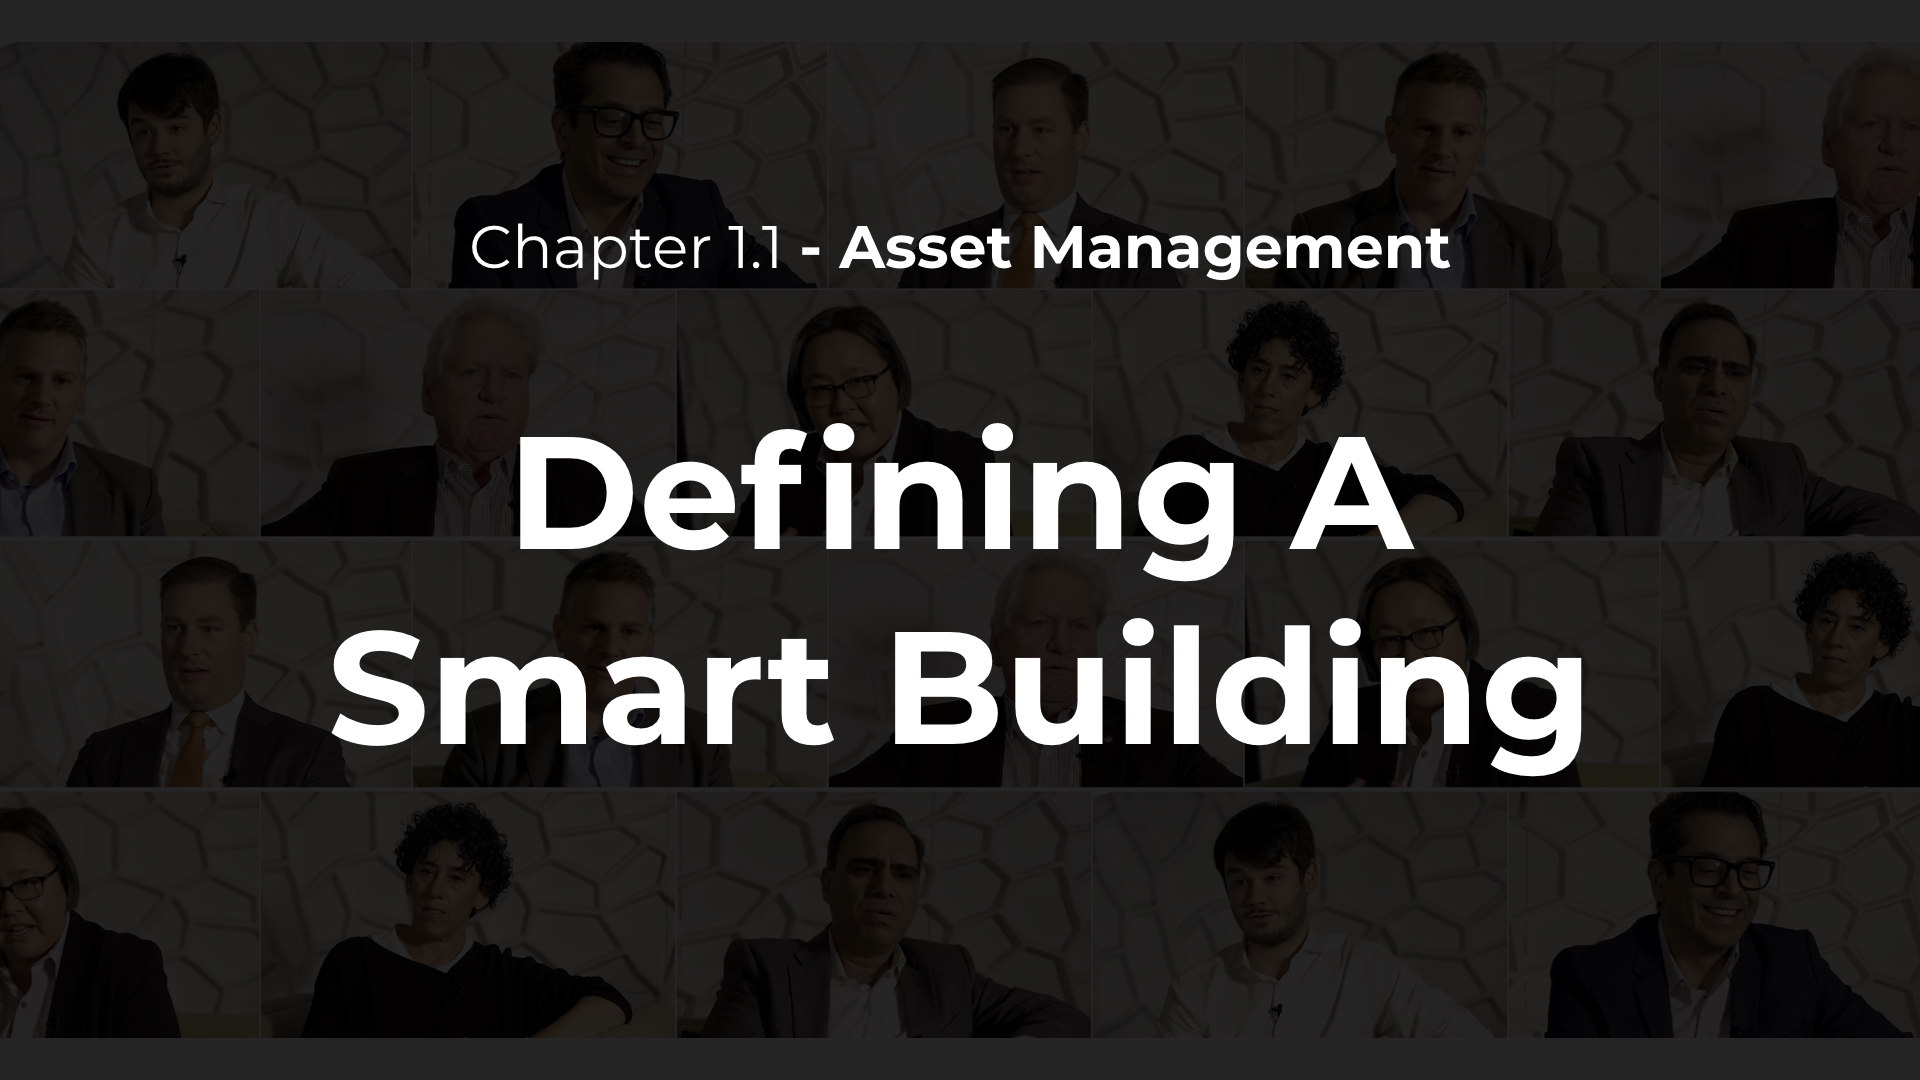 1.1 - Defining A Smart Building